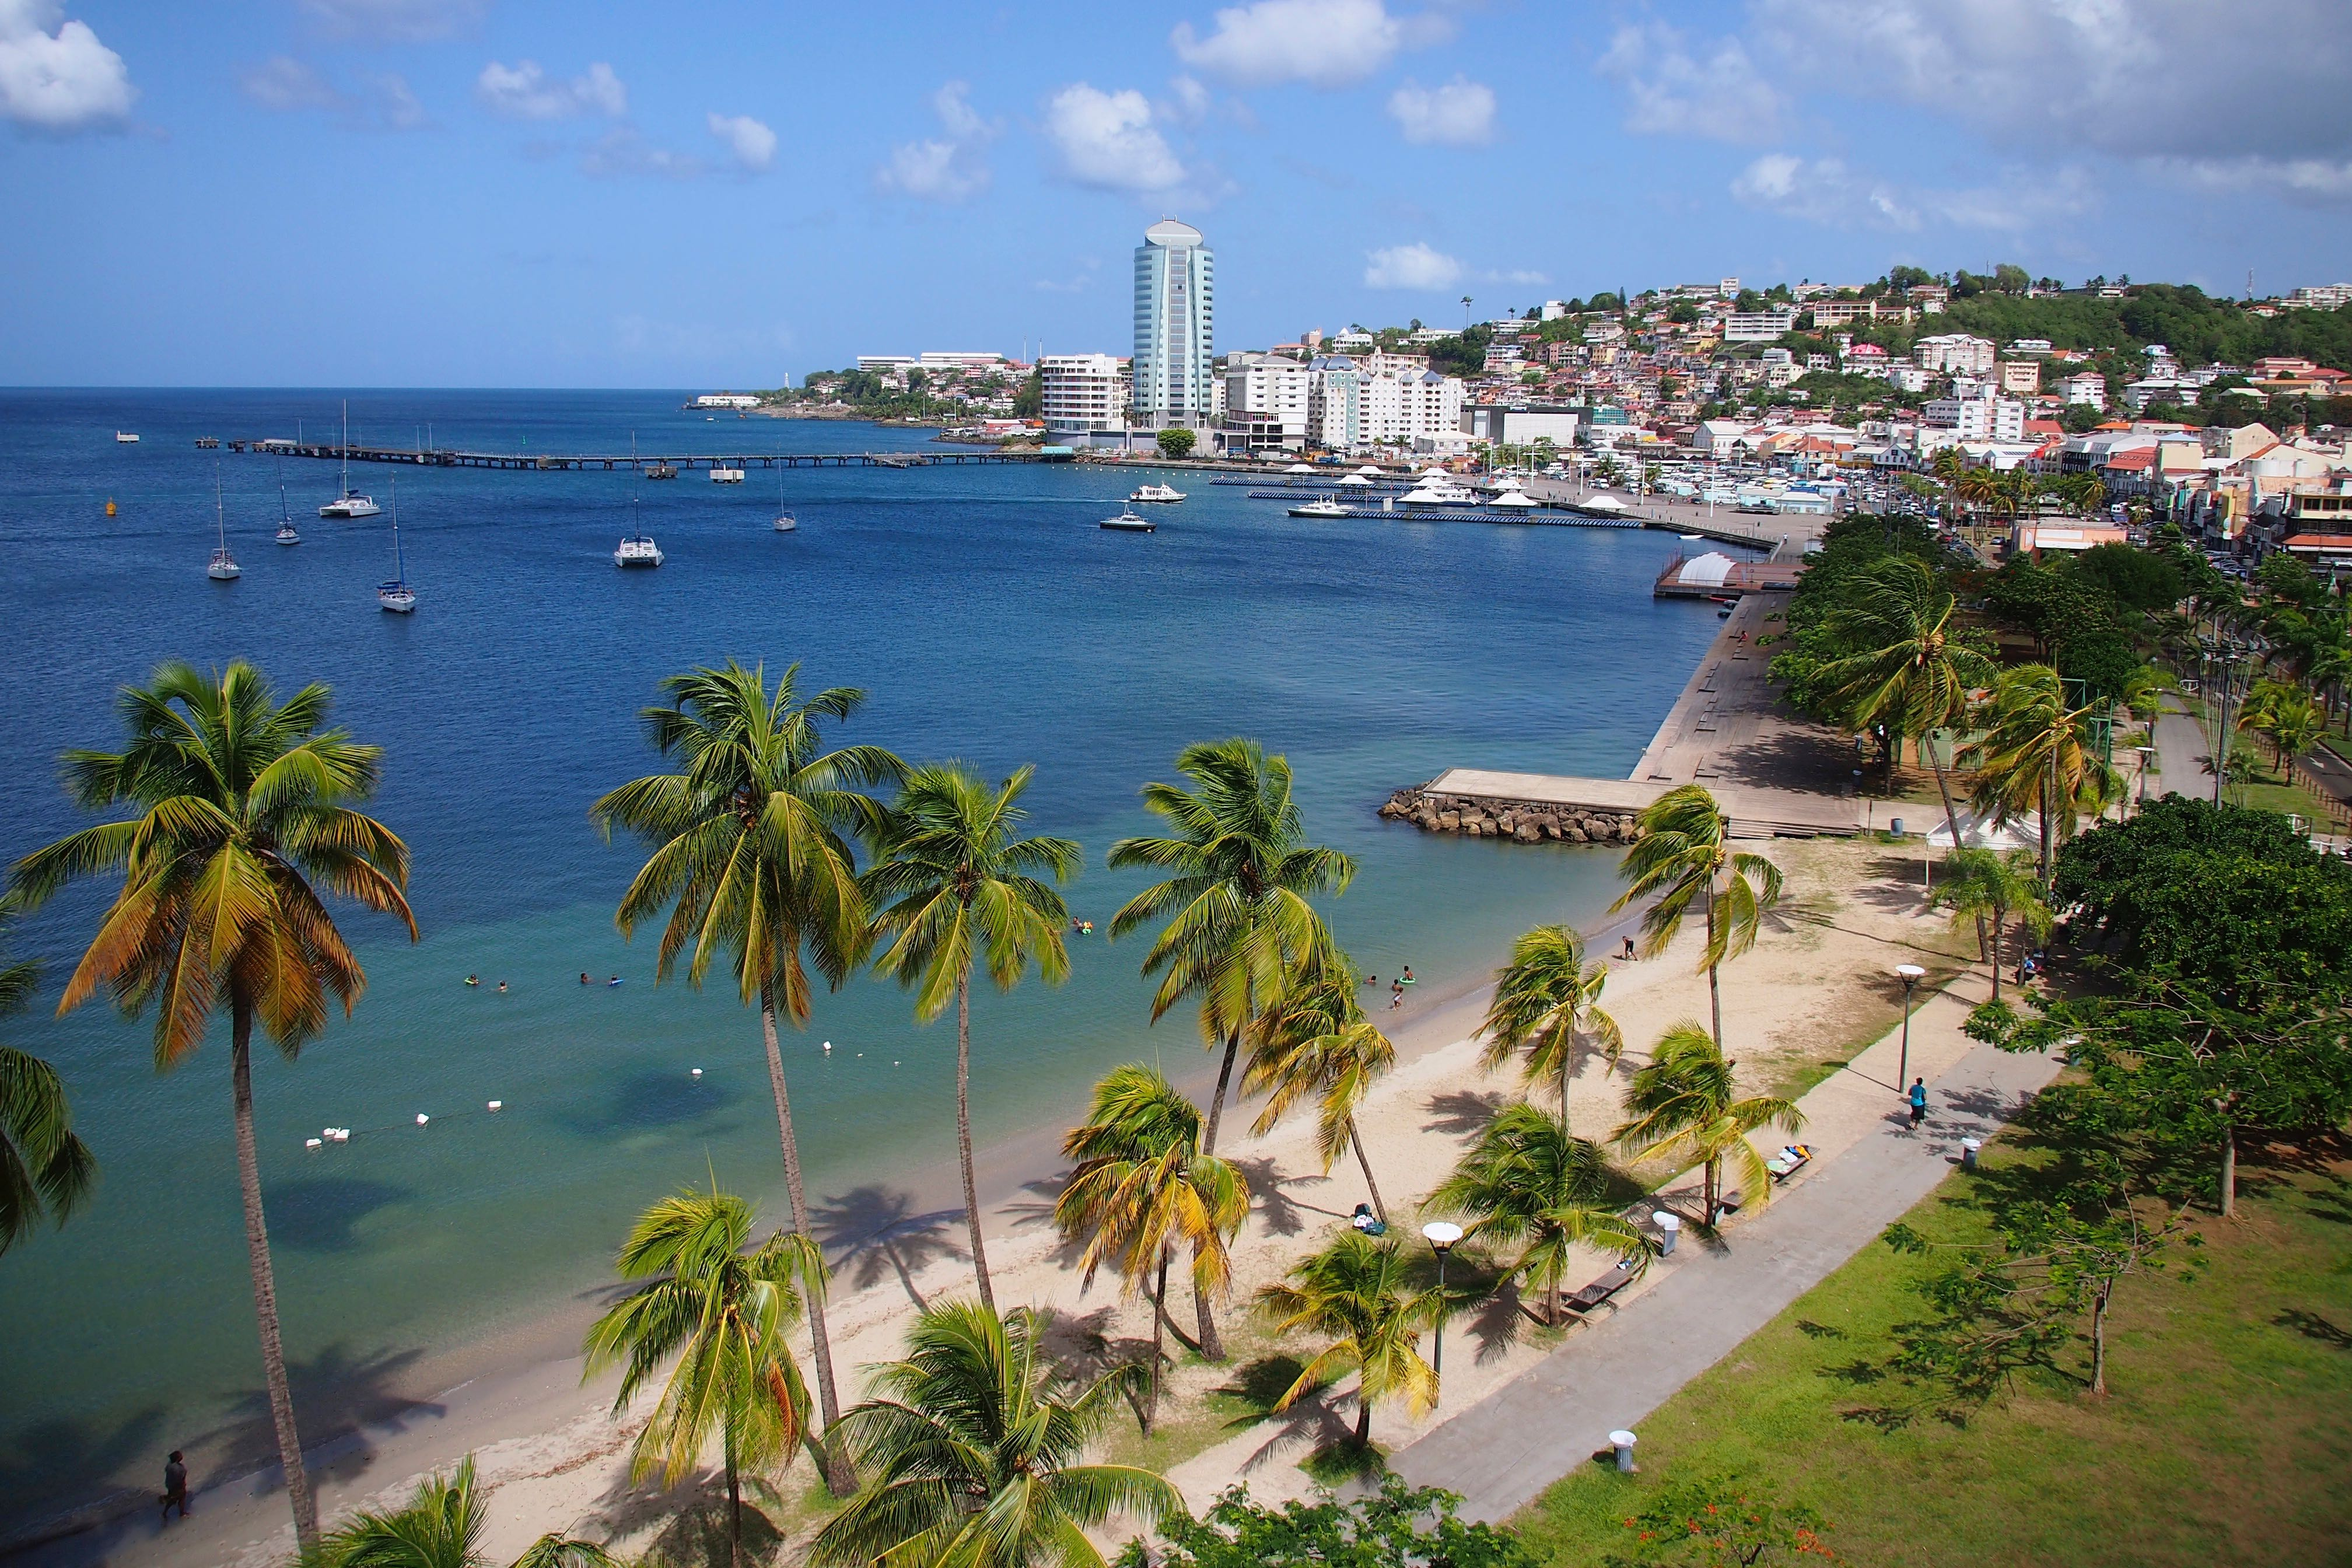 Views of the Fort-de-France waterfront. (Photo Credit: Steve Bennett/UncommonCaribbean.com)